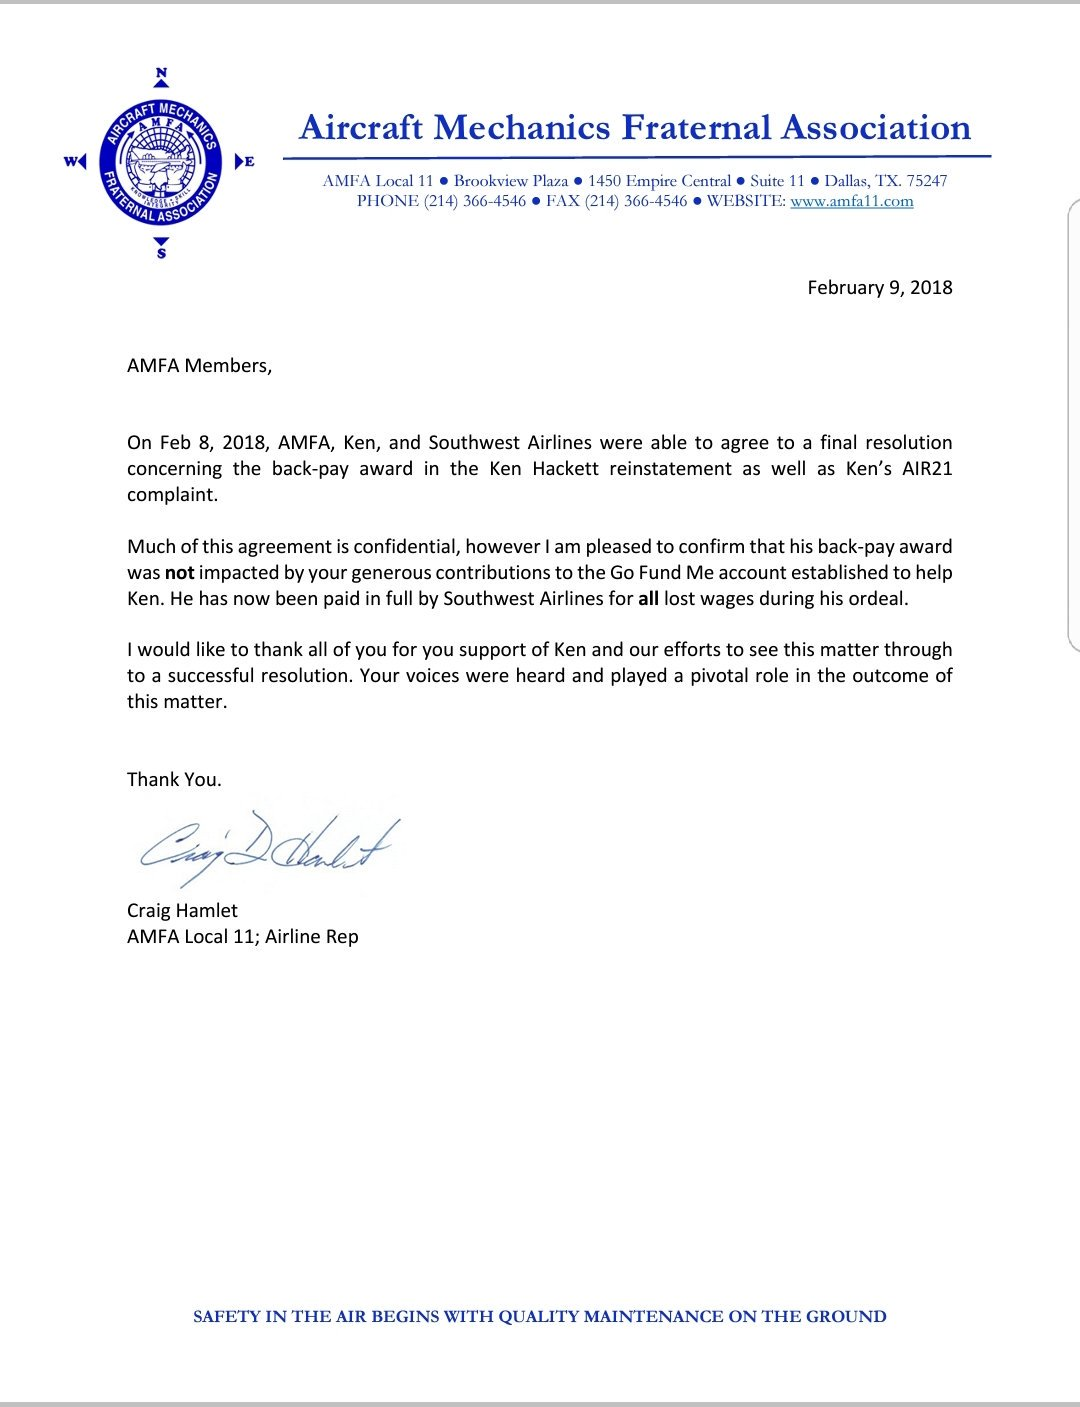 Amfa National On Twitter Resolution Achieved For Lost Wages During Wrongful Termination Of Ken Hackett With Southwest Airlines Conor Shine Amfalocal11 Amfa 4 Twu 555 Amfalocal32 Amfalocal18 Swapapilots Dallasbiznews Twu556 Airlinewriter